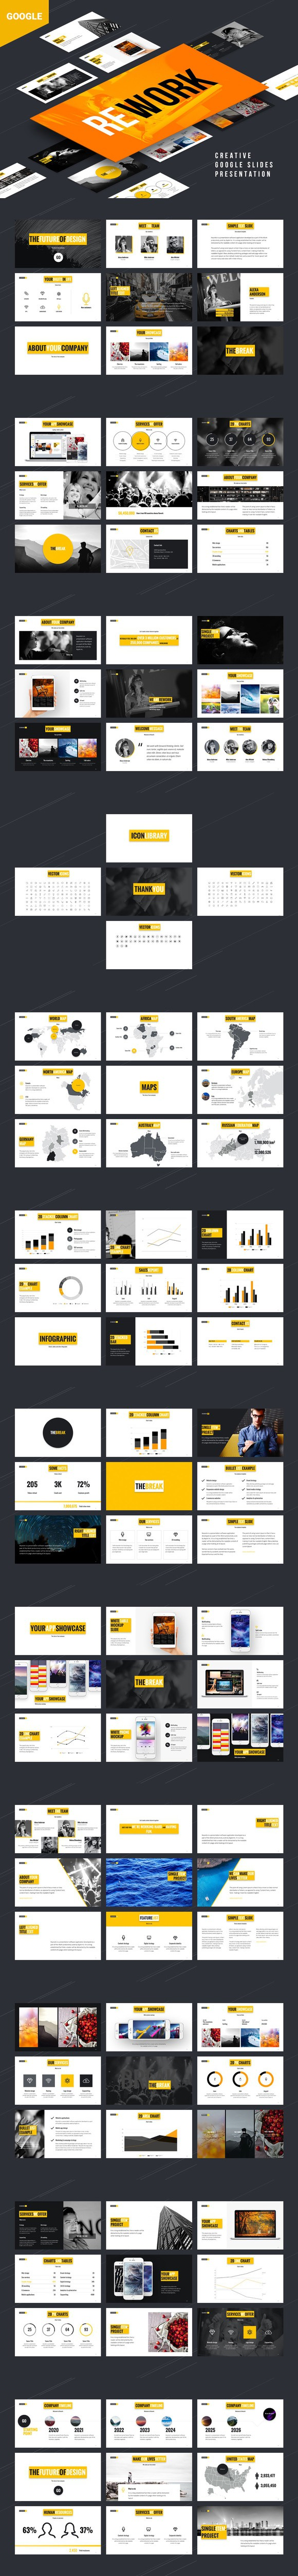 Rework Google Presentation. Google Slides Templates. $16.00 | Google ...